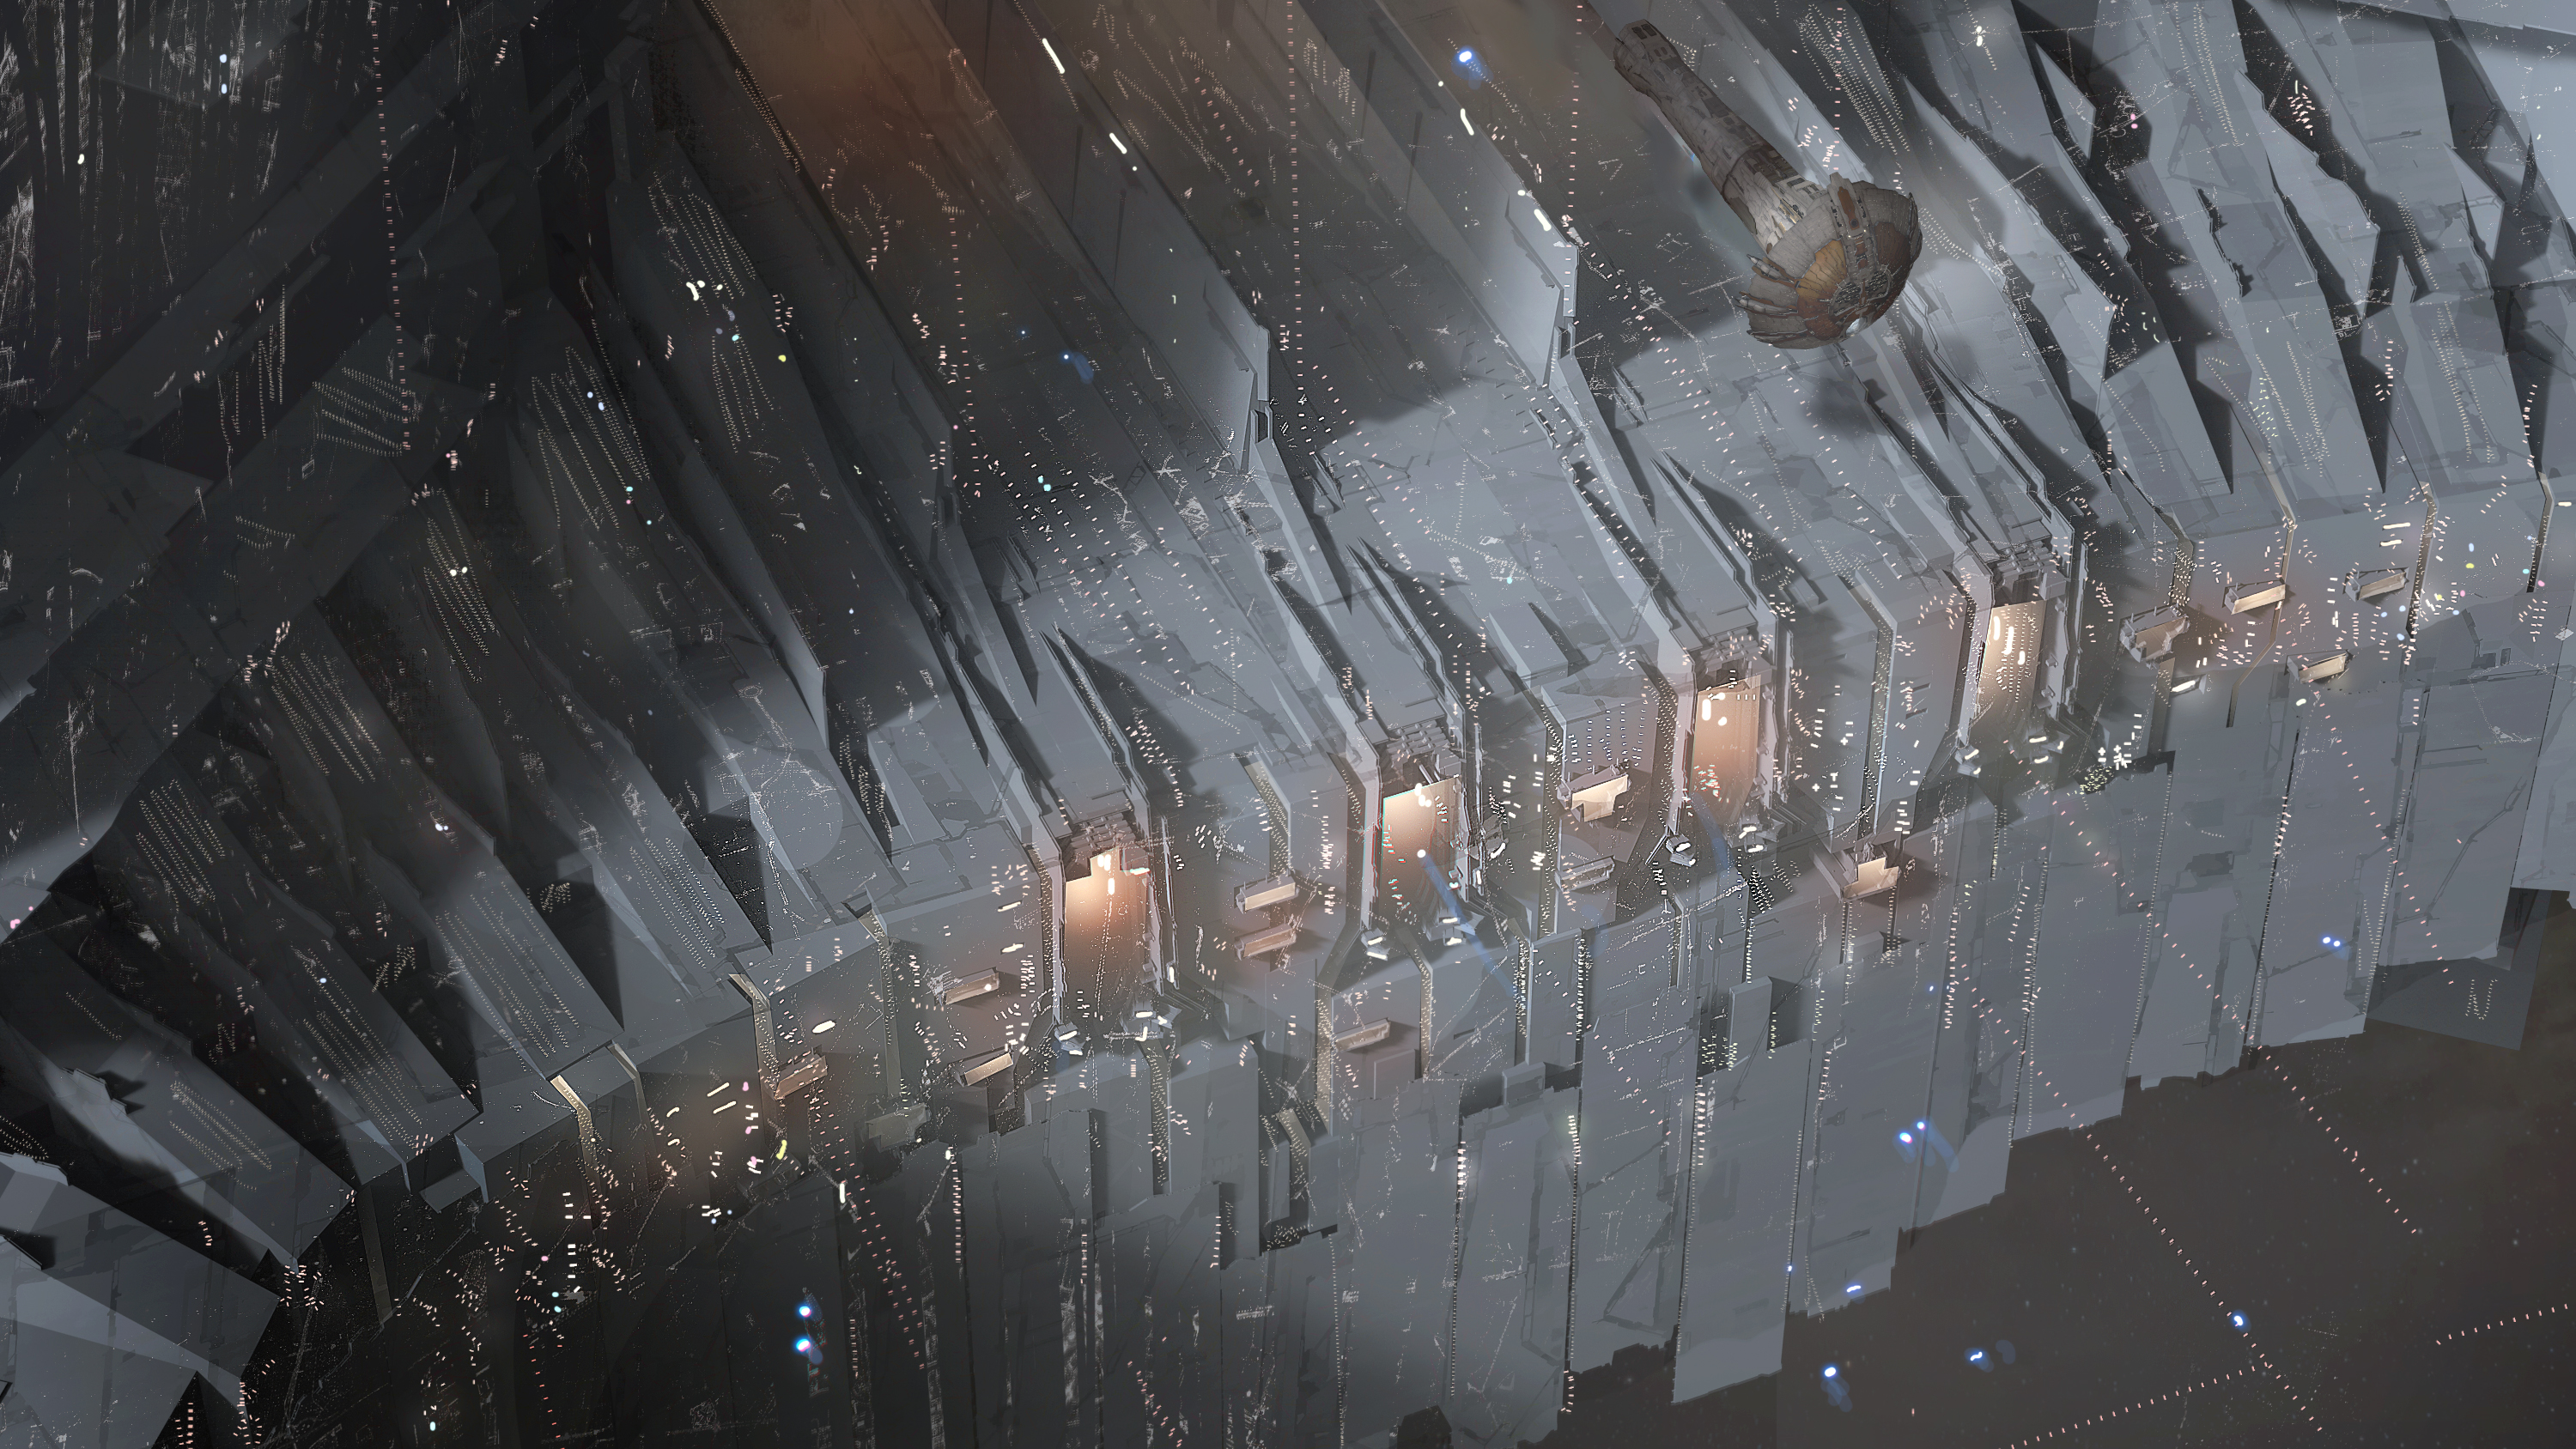 Eve online building your citadel one block at a time please remember all of those numbers and requirements are work in progress and subject to change before the release nevertheless we wish you happy malvernweather Images